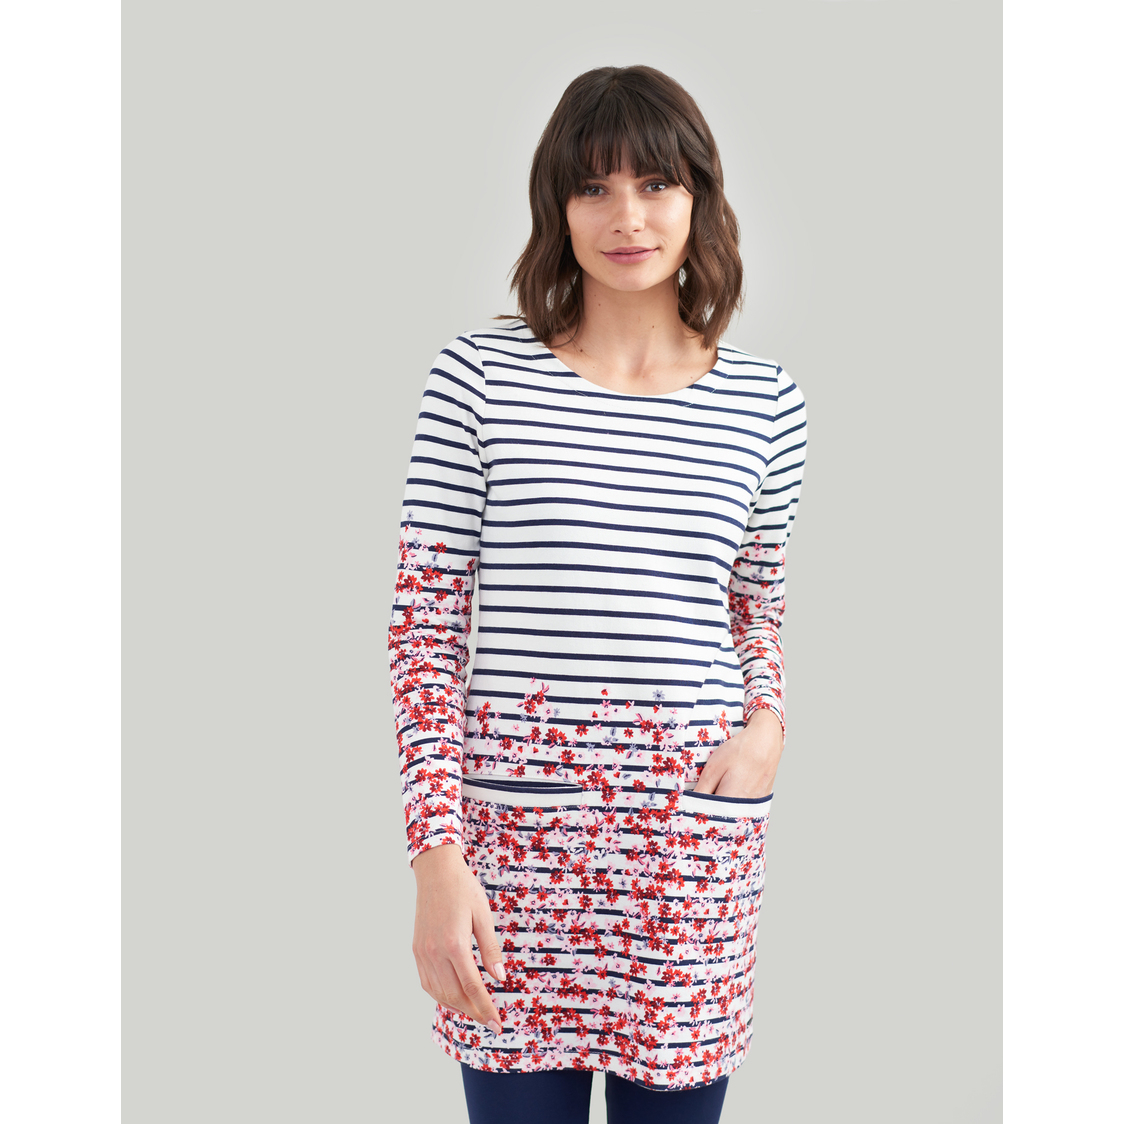 QUINN Tunic with pockets